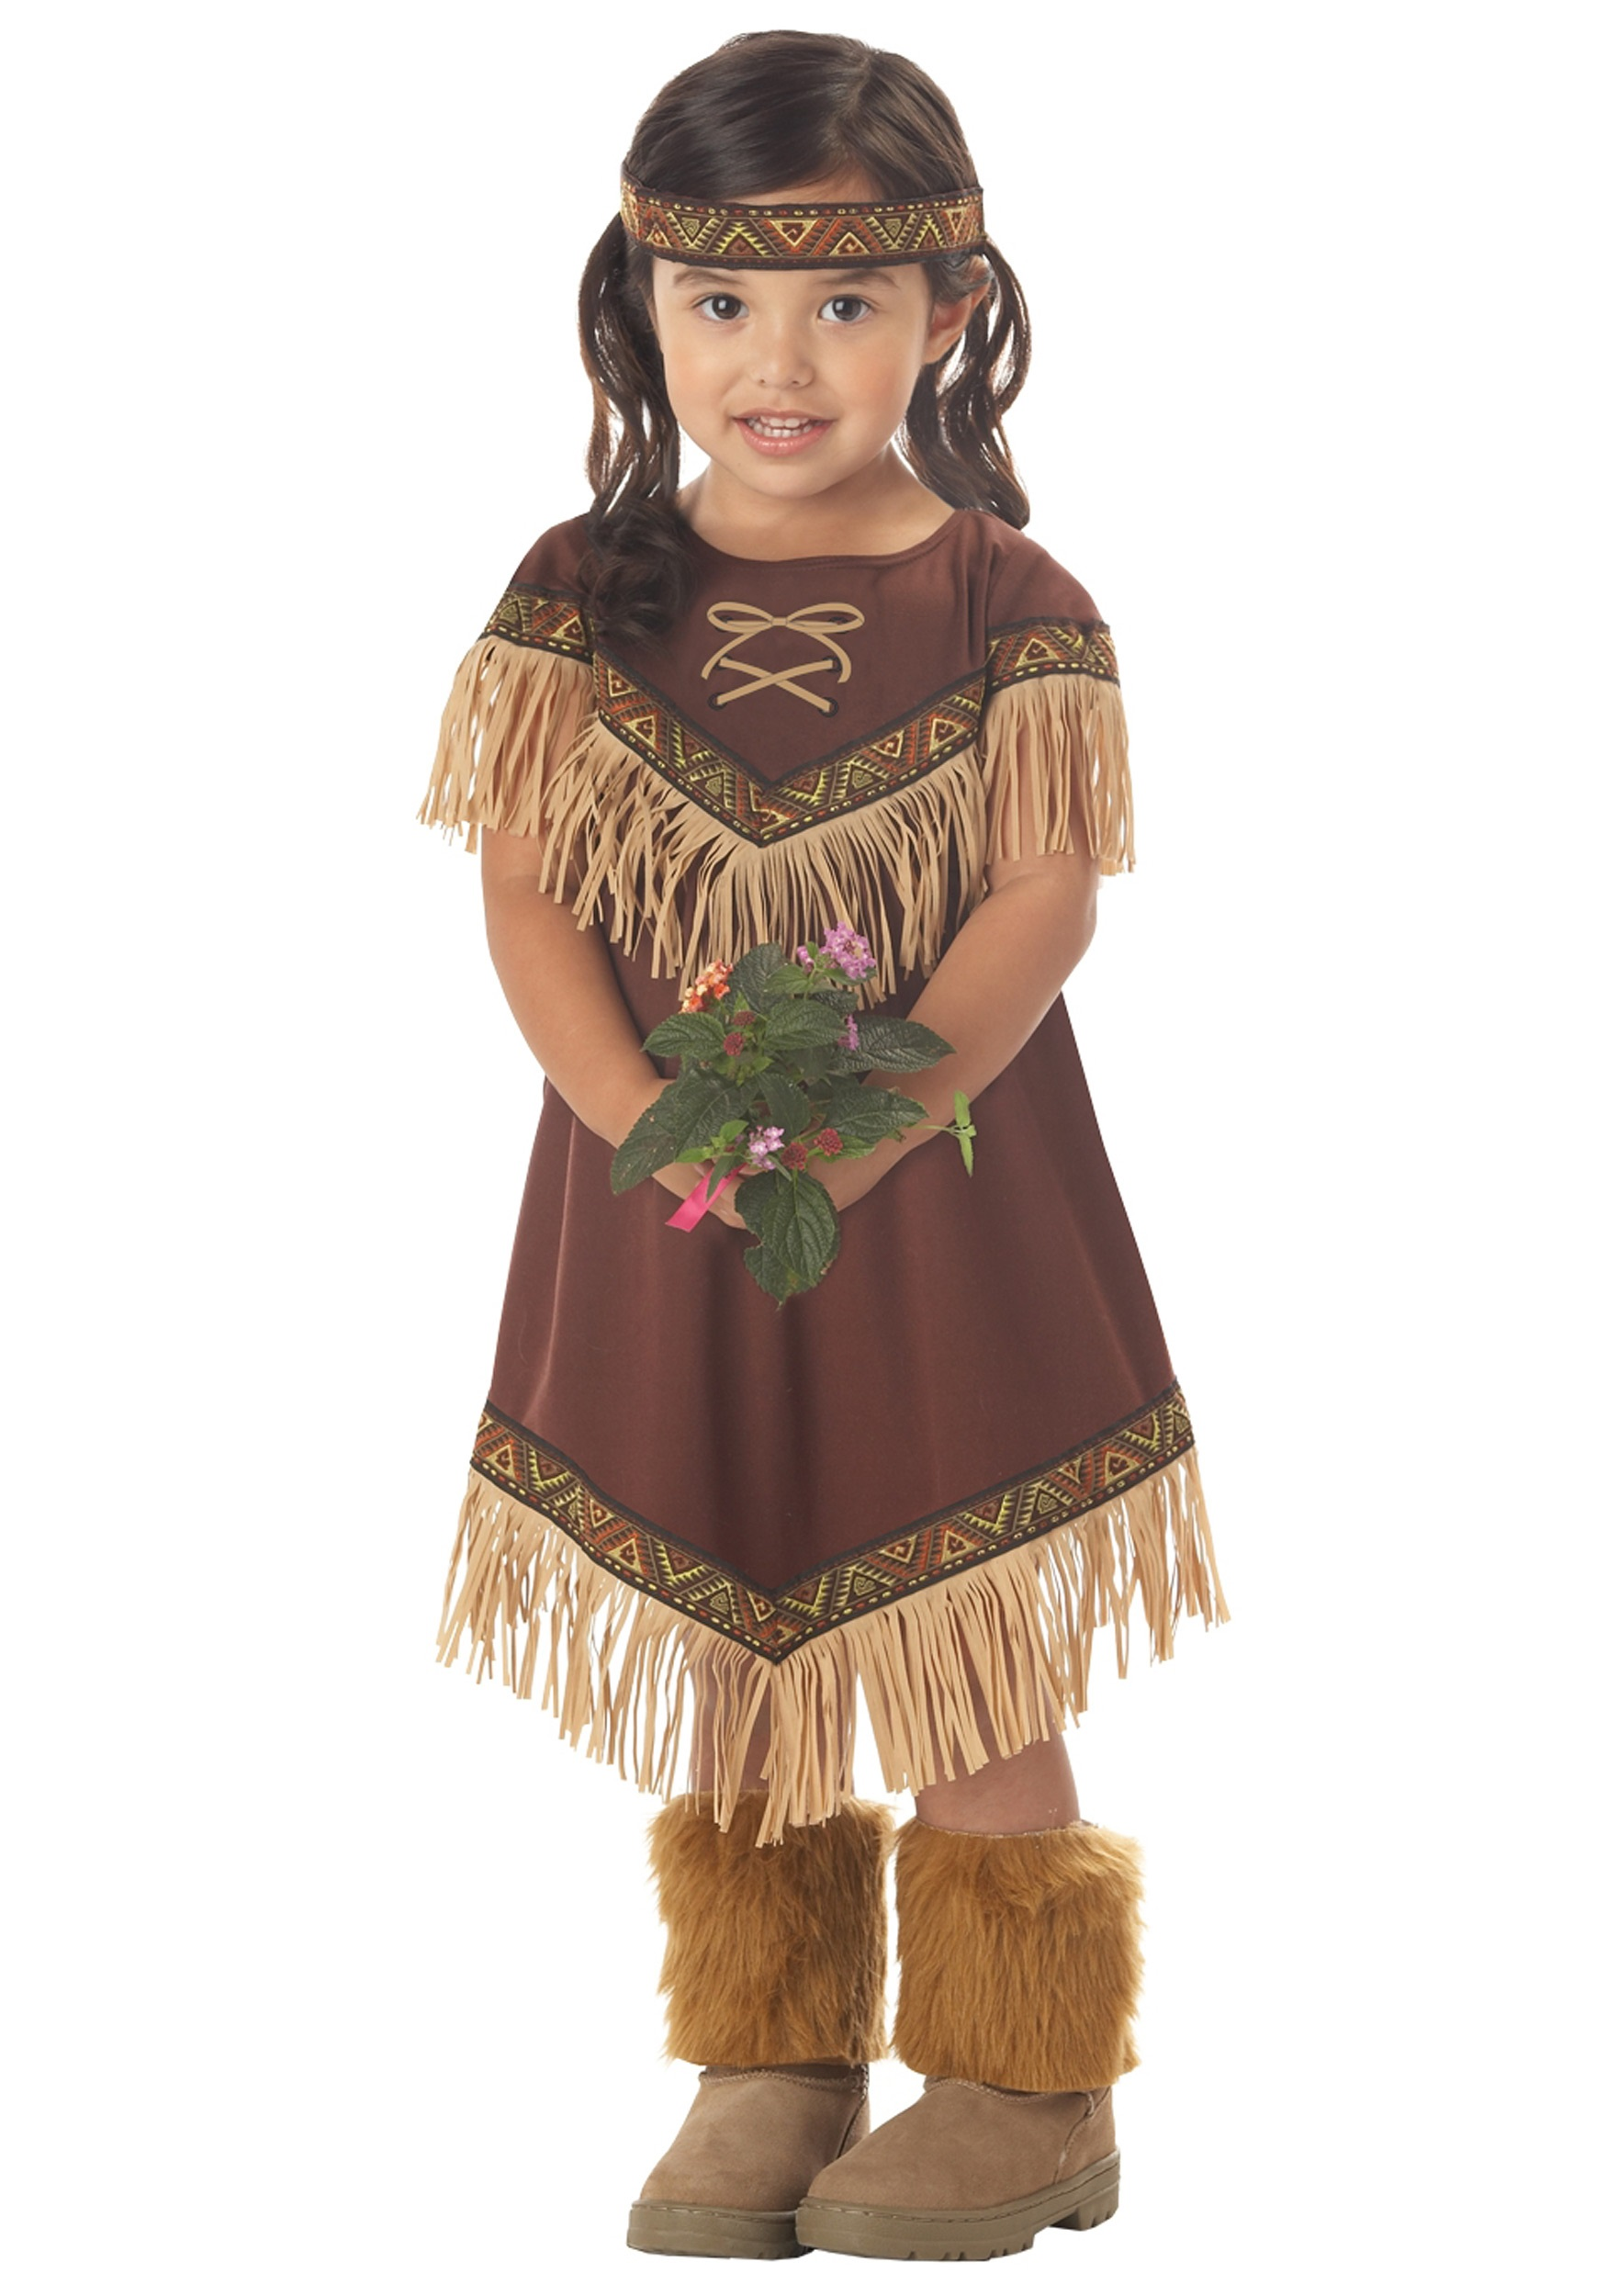 Toddler Liu0027l Indian Princess Costume  sc 1 st  Halloween Costumes & Toddler Liu0027l Native American Princess Costume